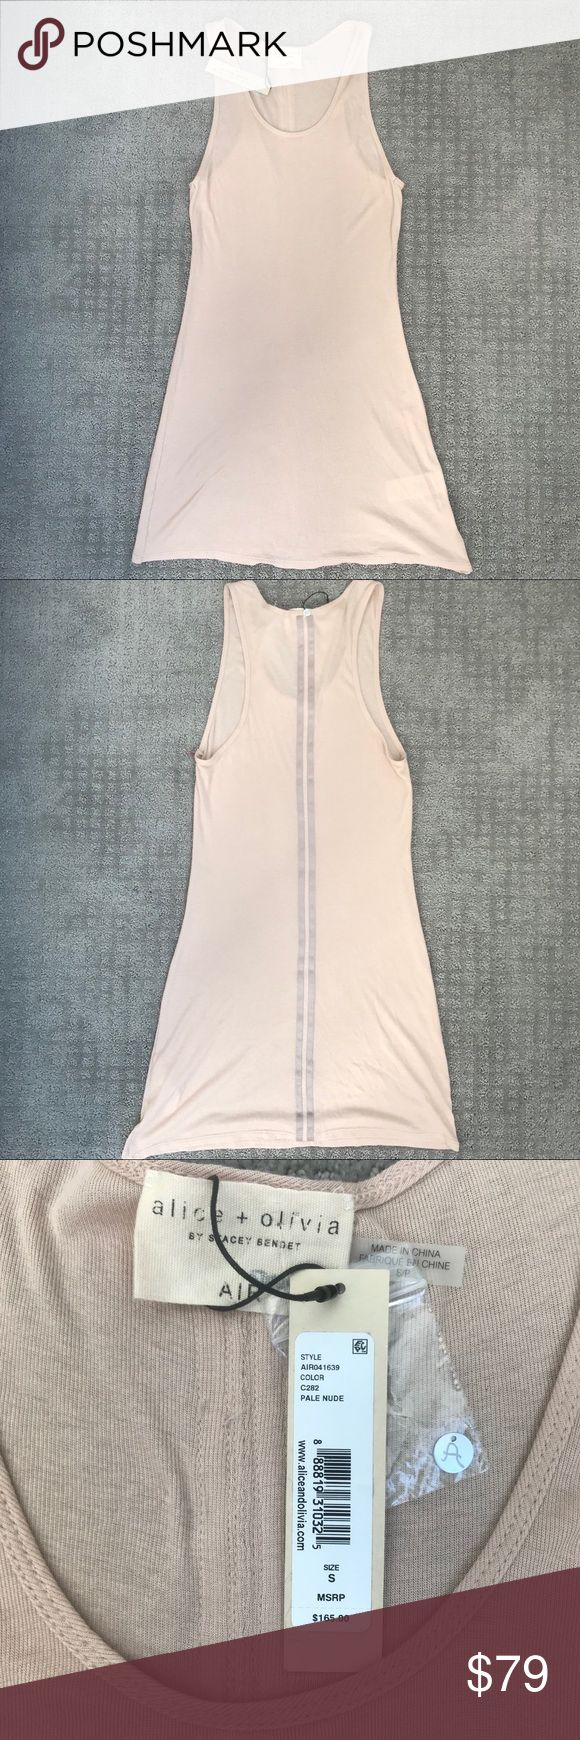 Alice + Olivia AIR Maryellen Long Tank- Nude Super Comfy NWT Alice + Olivia AIR Maryellen Long Tank Top  in Nude. Created by Stacey Bendet. This top is perfect to wear alone or with a cute blazer. Vertical stripe detail down middle of back. 100% Polyester. Last pic is just to show it on a model for reference.   Measurements are shown but let me know if you'd like more.   Open to offers. Alice + Olivia Tops Tank Tops